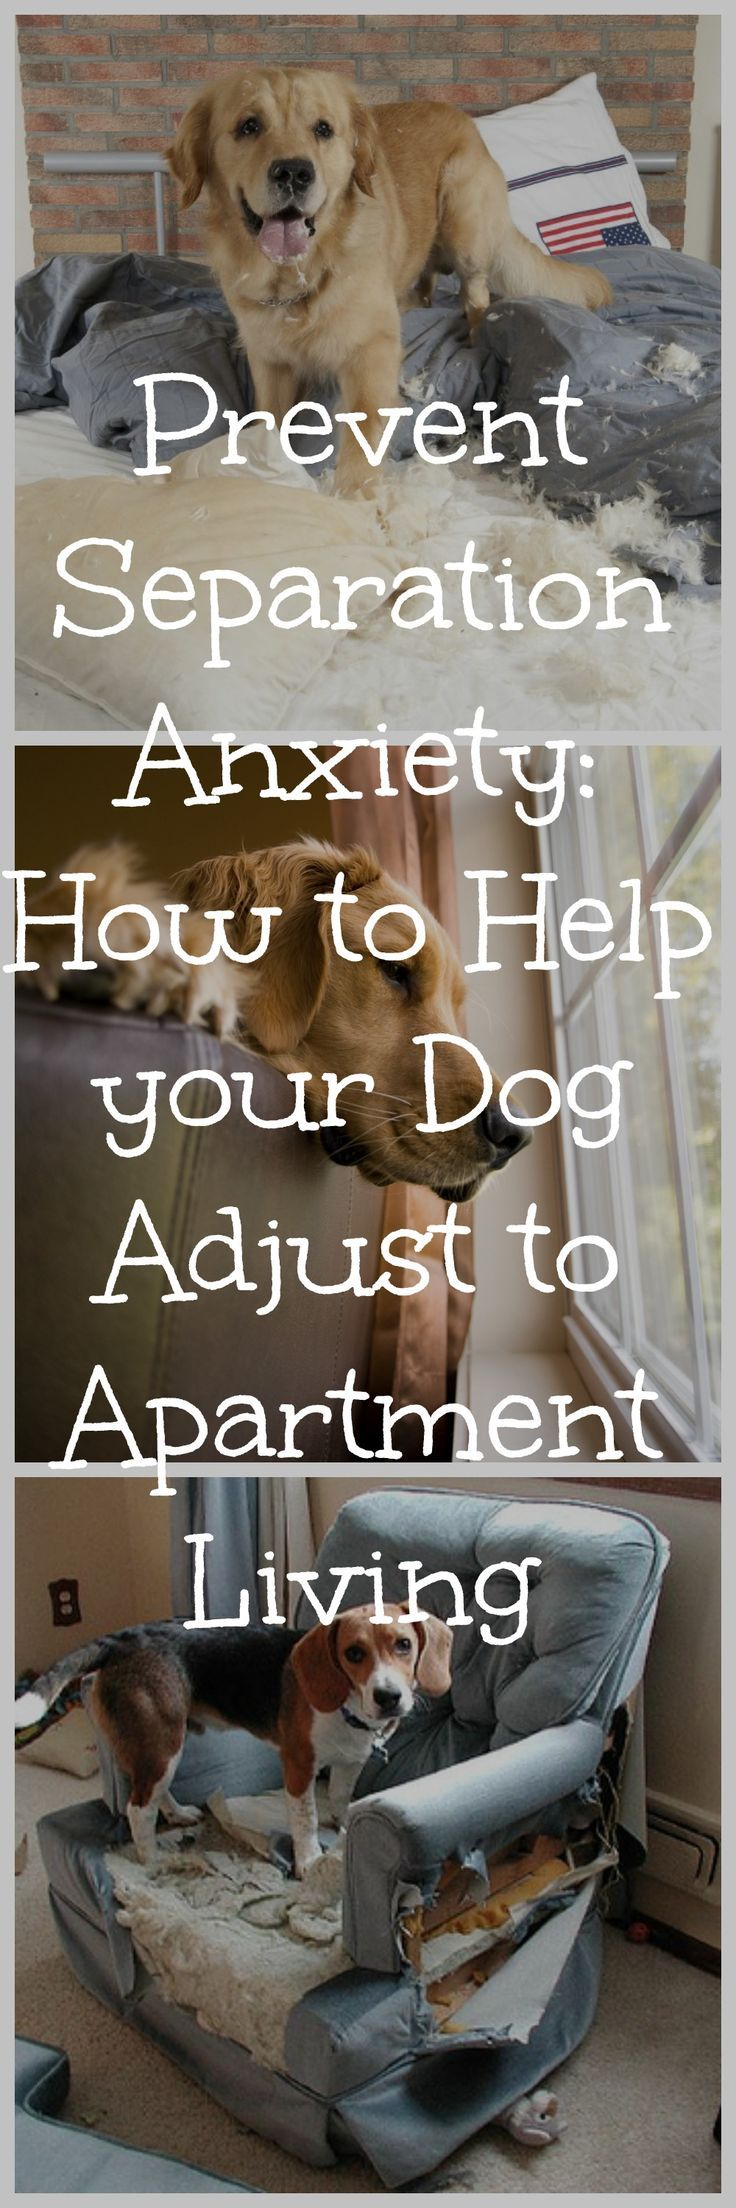 For many of us with pets, our animals are part of the family. But with busy work schedules, school, or running around with the kids, we might not have as much time with our dogs as we want. Here are a few tips to help your pet deal with pet anxiety.